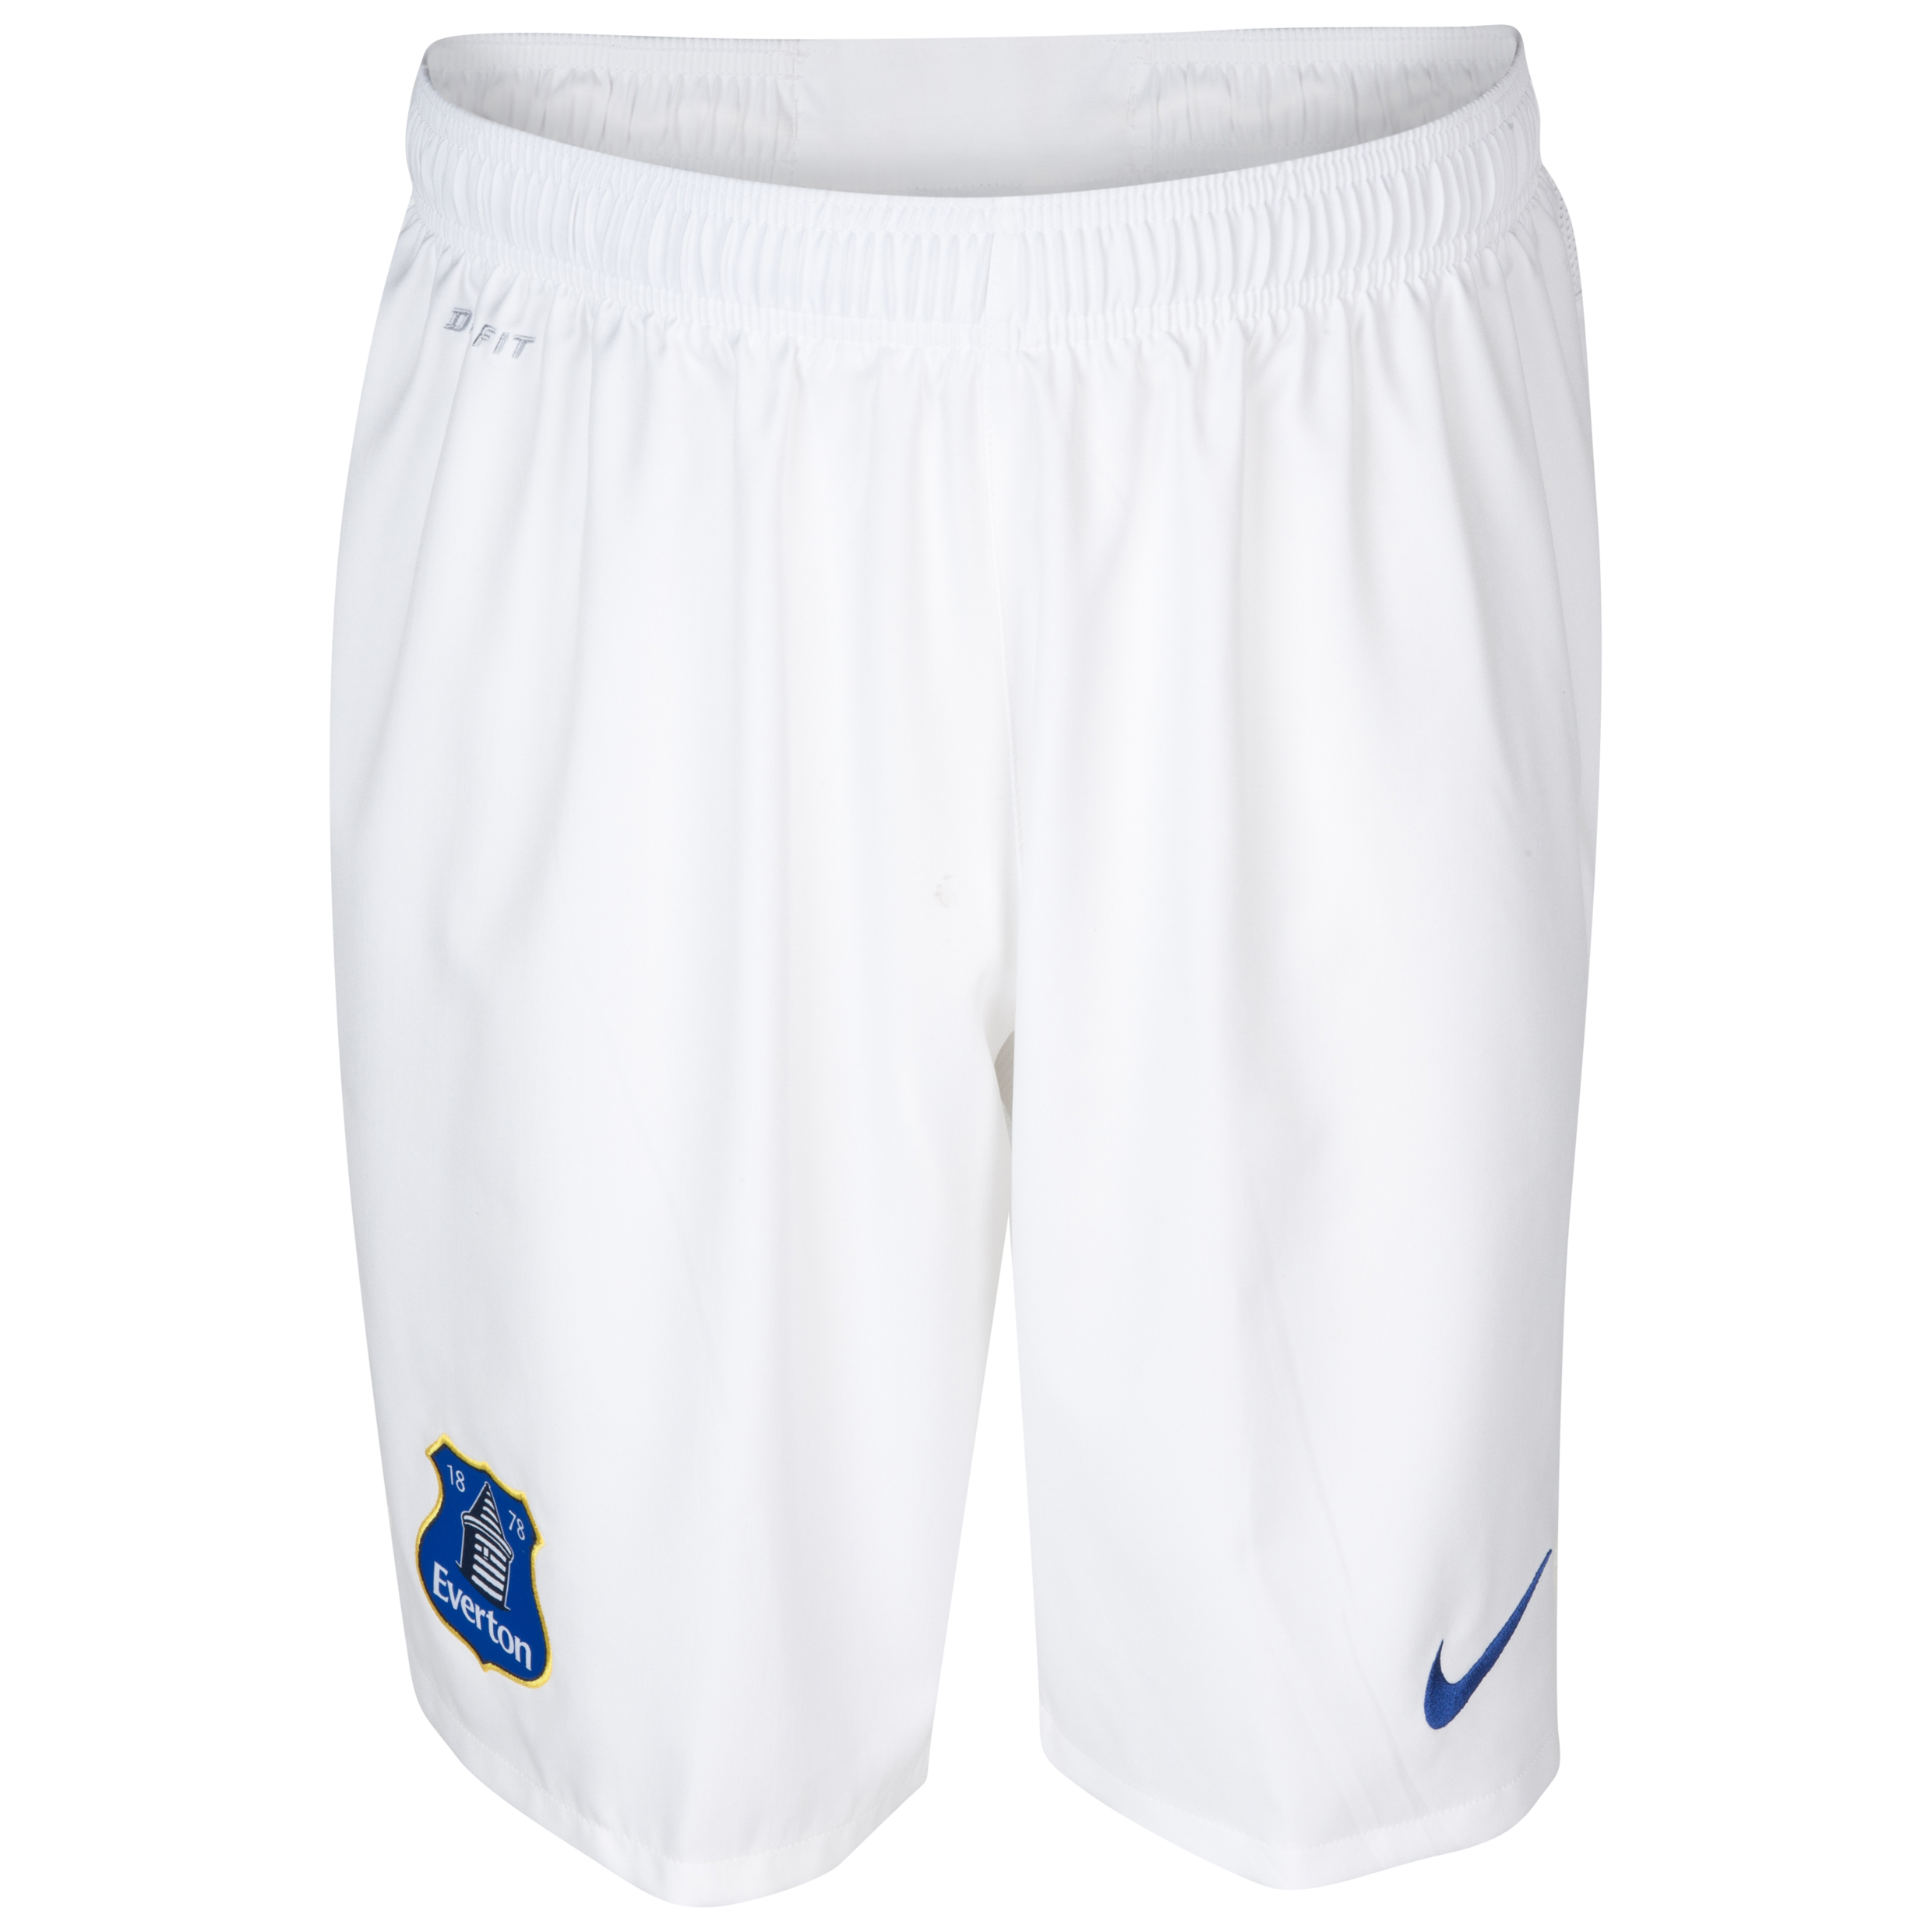 Everton Home Short 2013/14 - Junior White